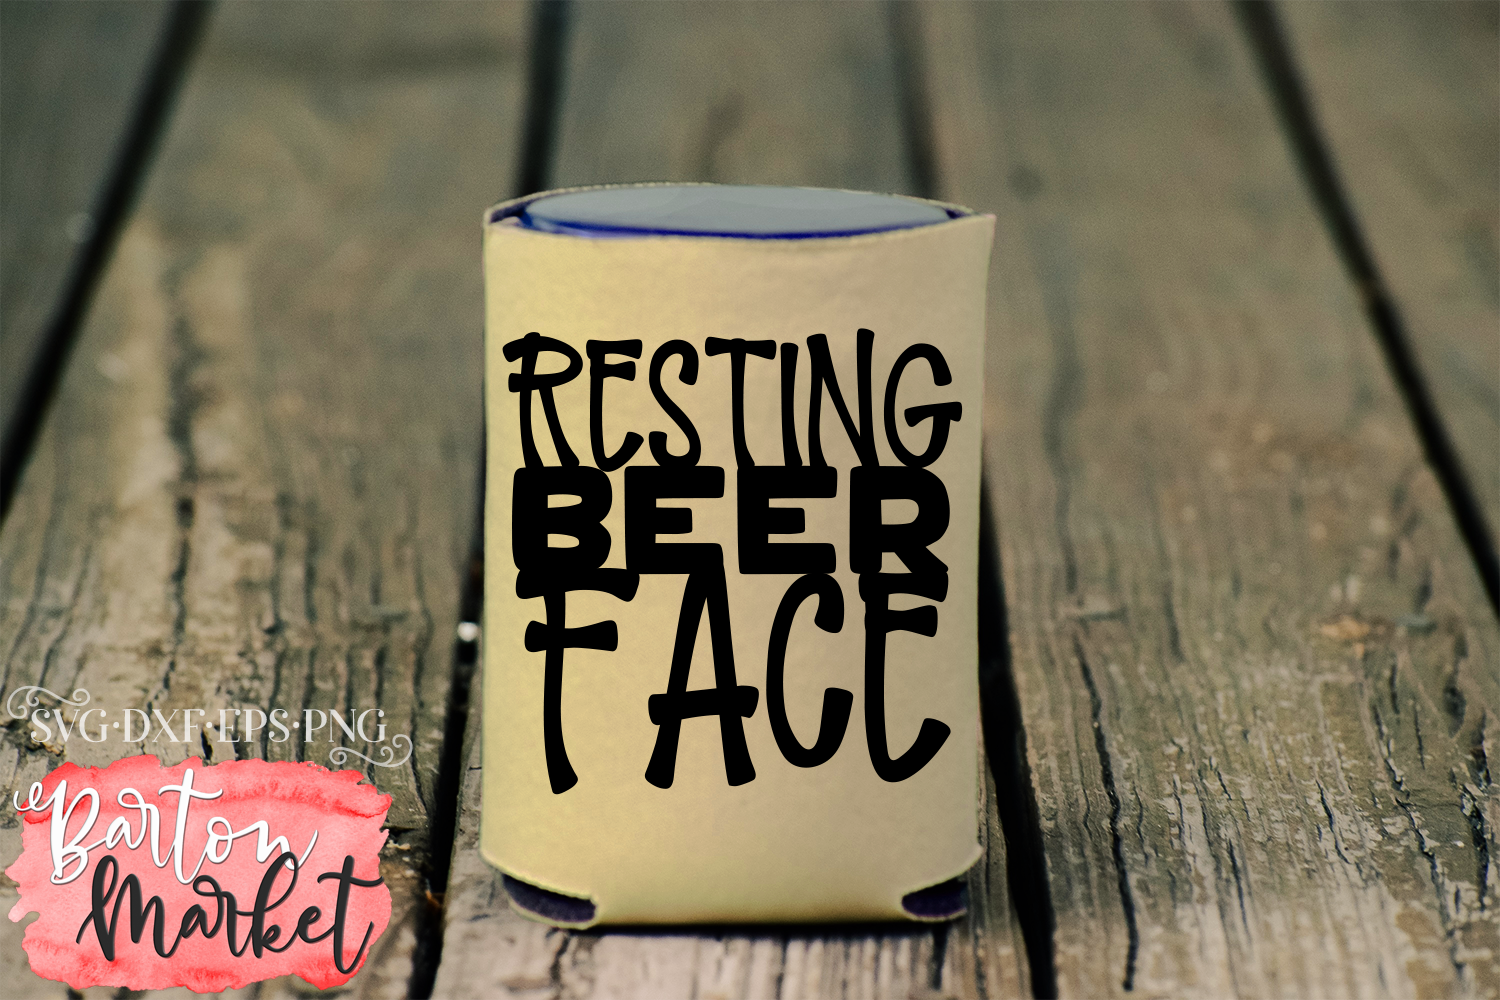 Resting Beer Face SVG DXF EPS PNG example image 4